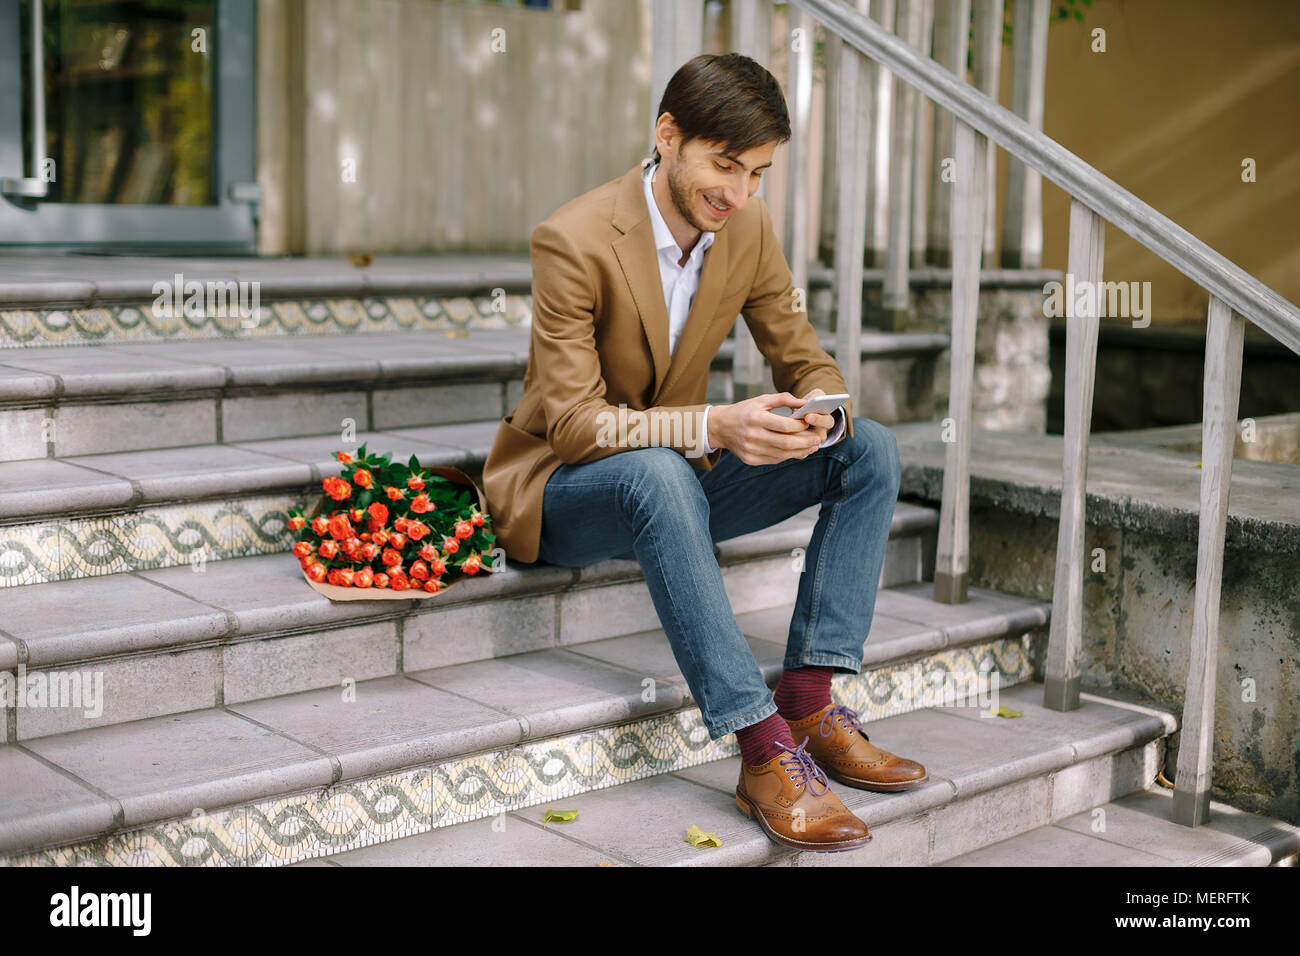 Smiling man texting while looking at the phone - Stock Image